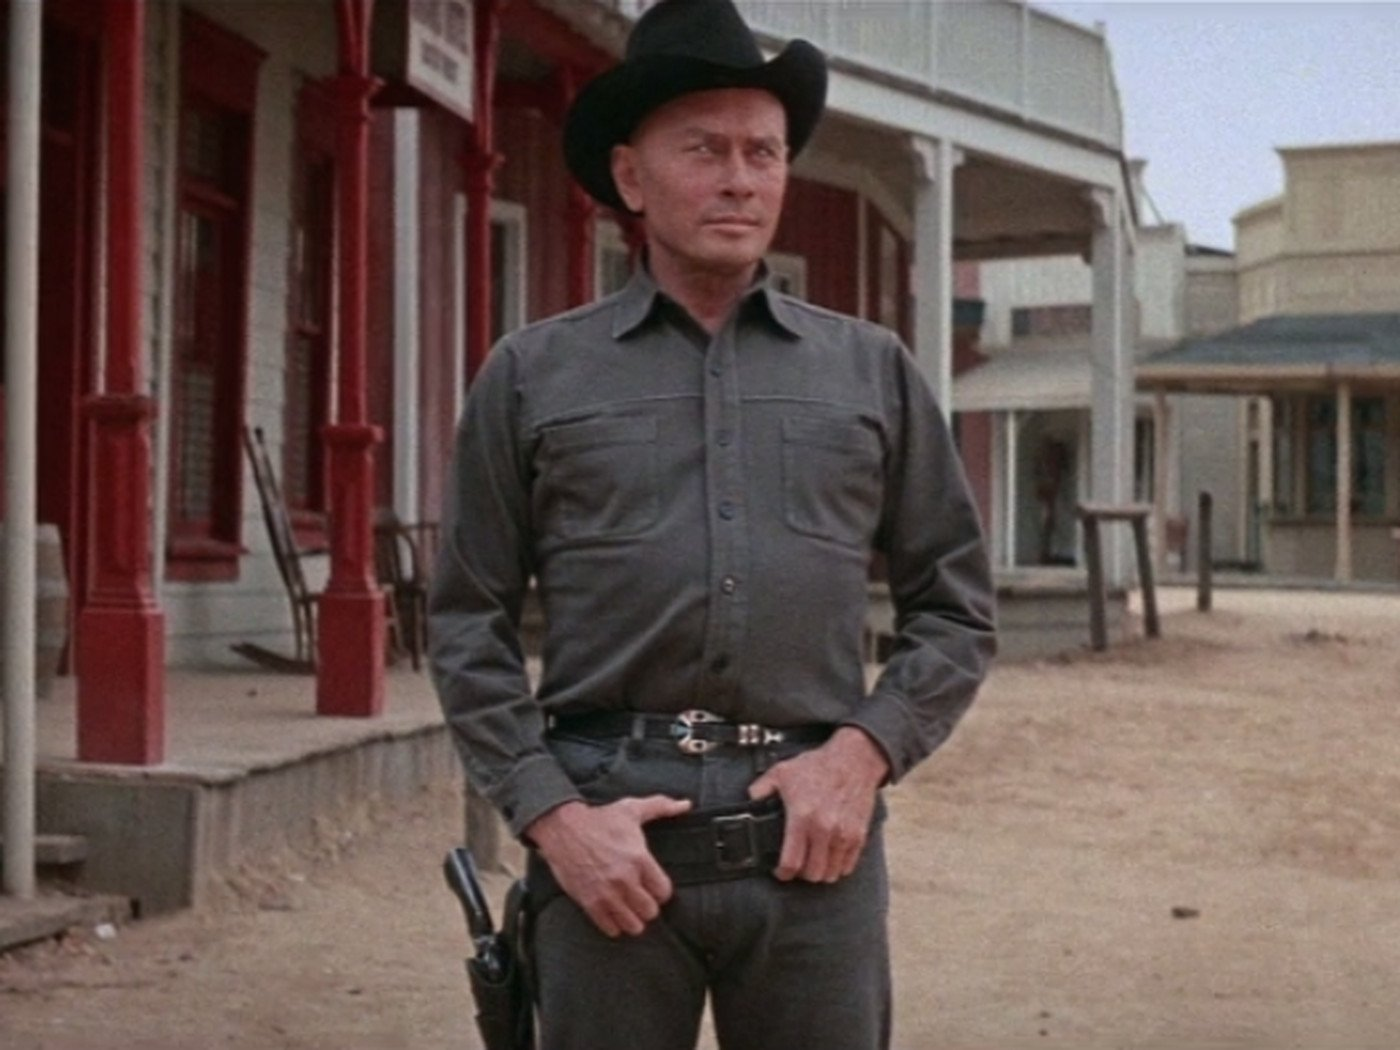 westworld 20 Films Set In Futures Past: What They Got Right (And Wrong) About The World We Live In